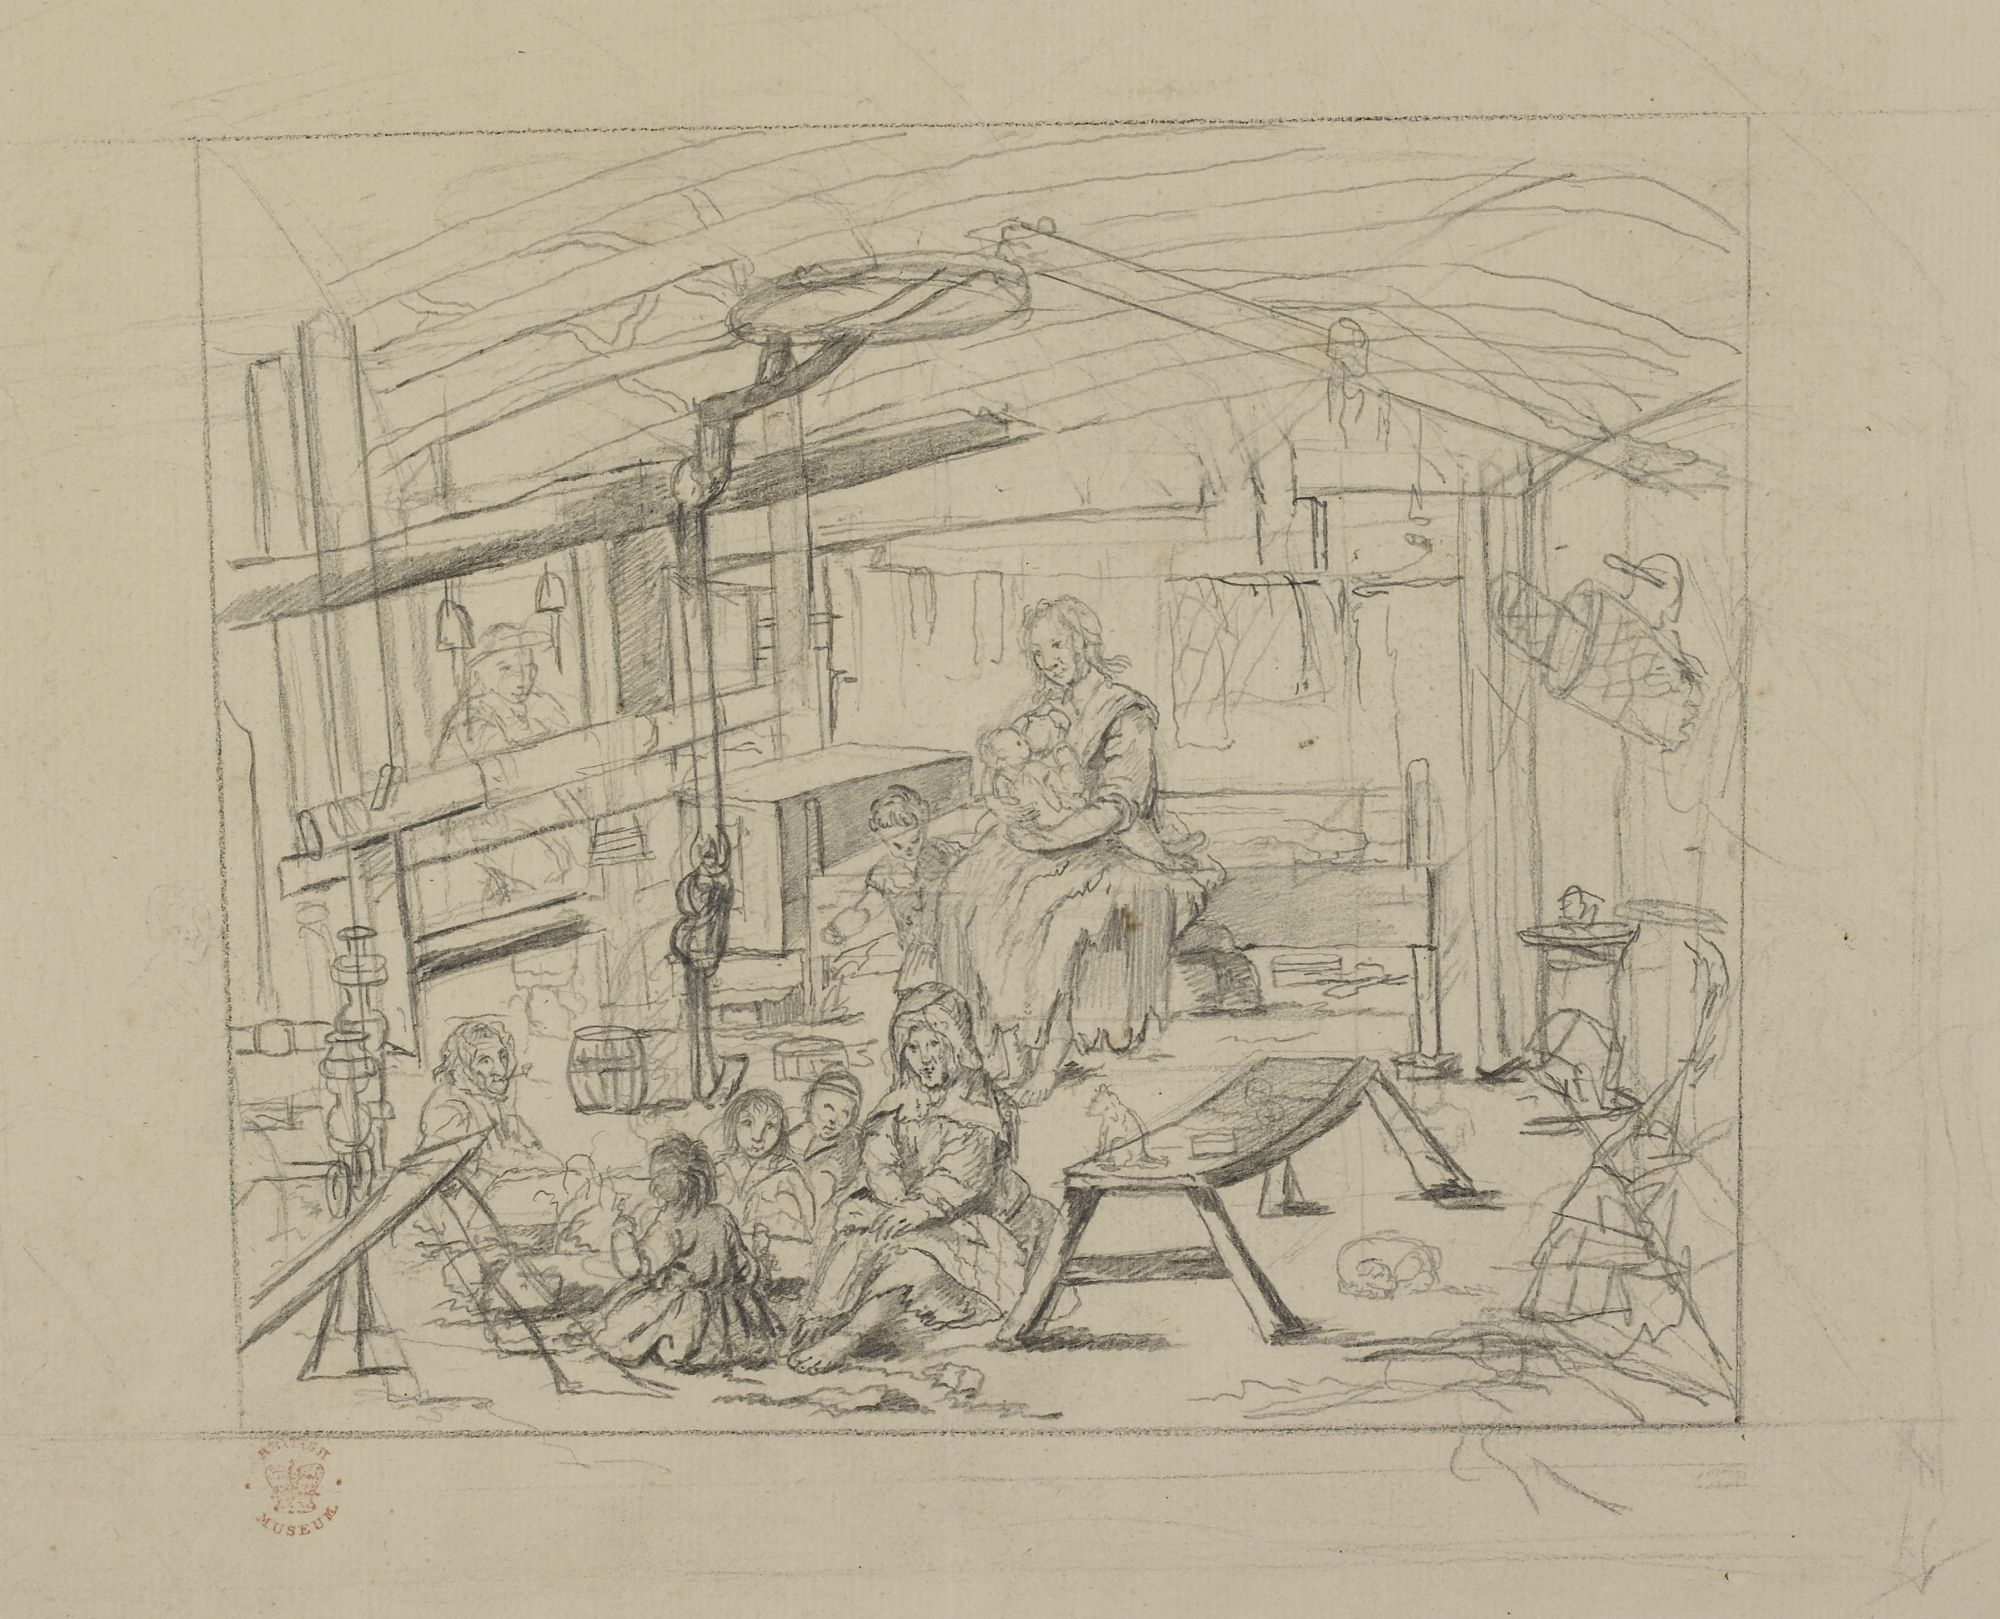 Pencil sketch of a Weaver's Cottage in Islay, by John Frederick Miller.